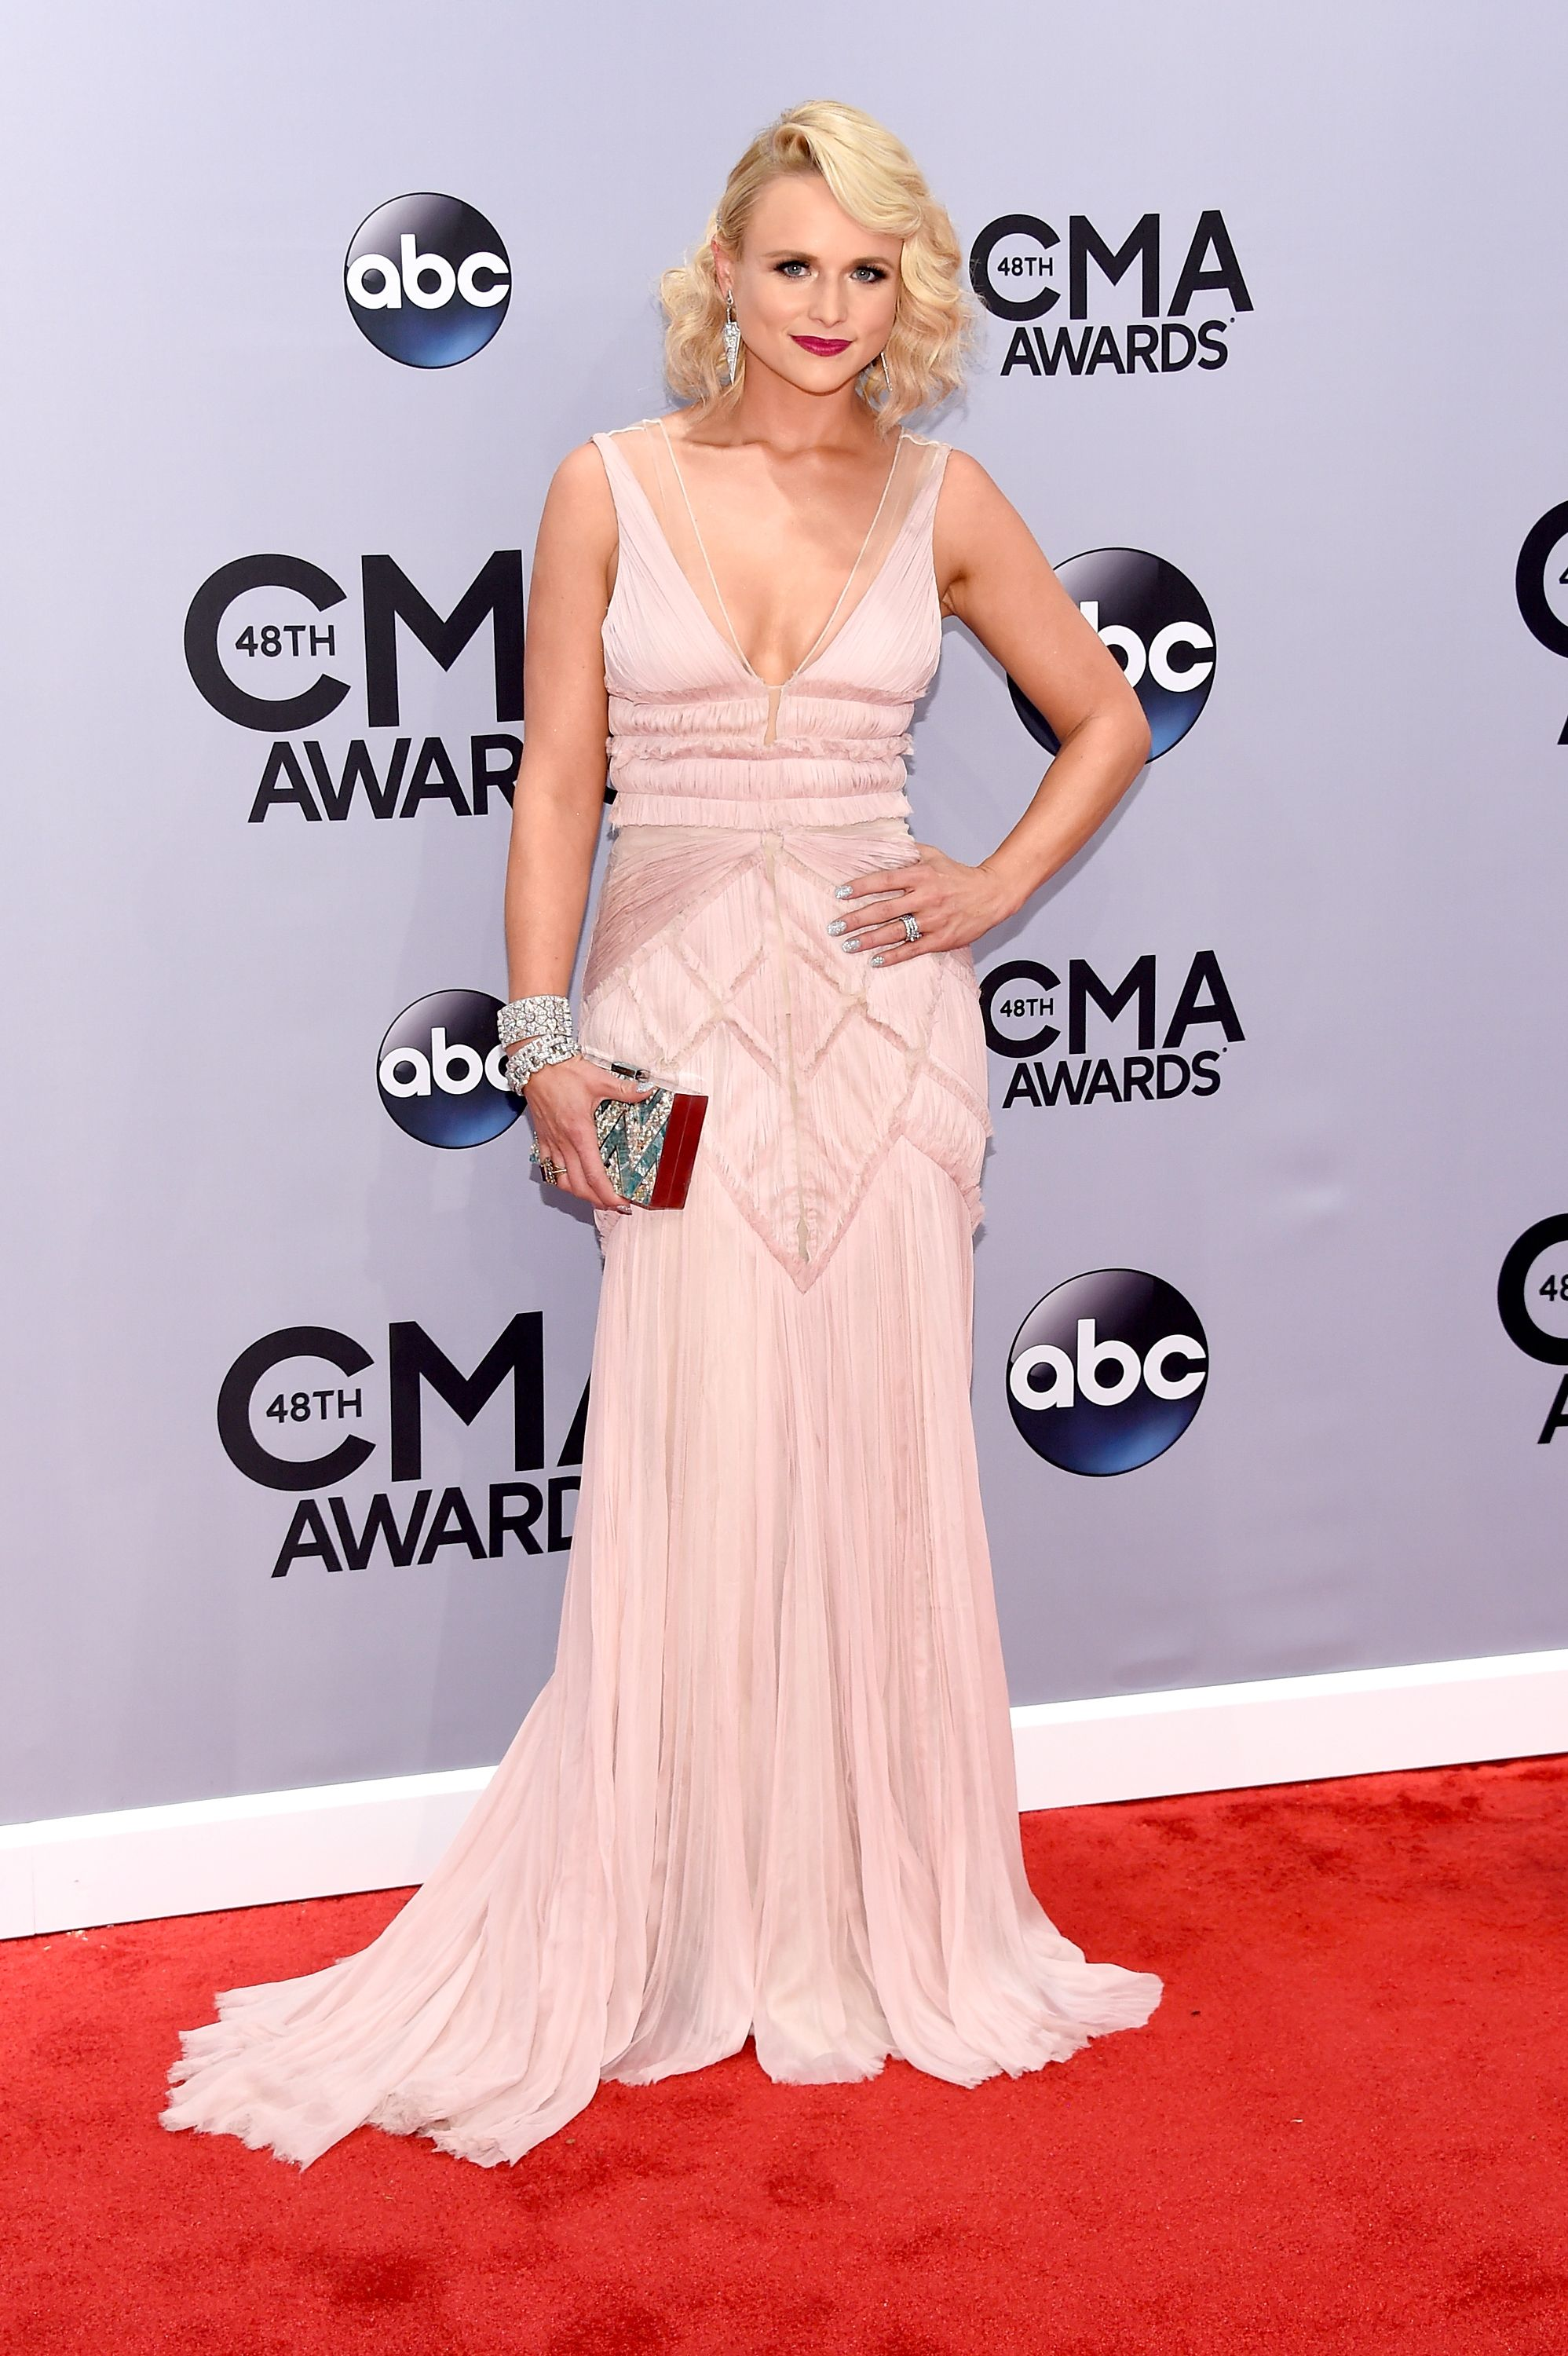 Miranda Lambert at the 48th annual CMA Awards at the Bridgestone Arena on November 5, 2014, in Nashville, Tennessee | Photo: Larry Busacca/Getty Images